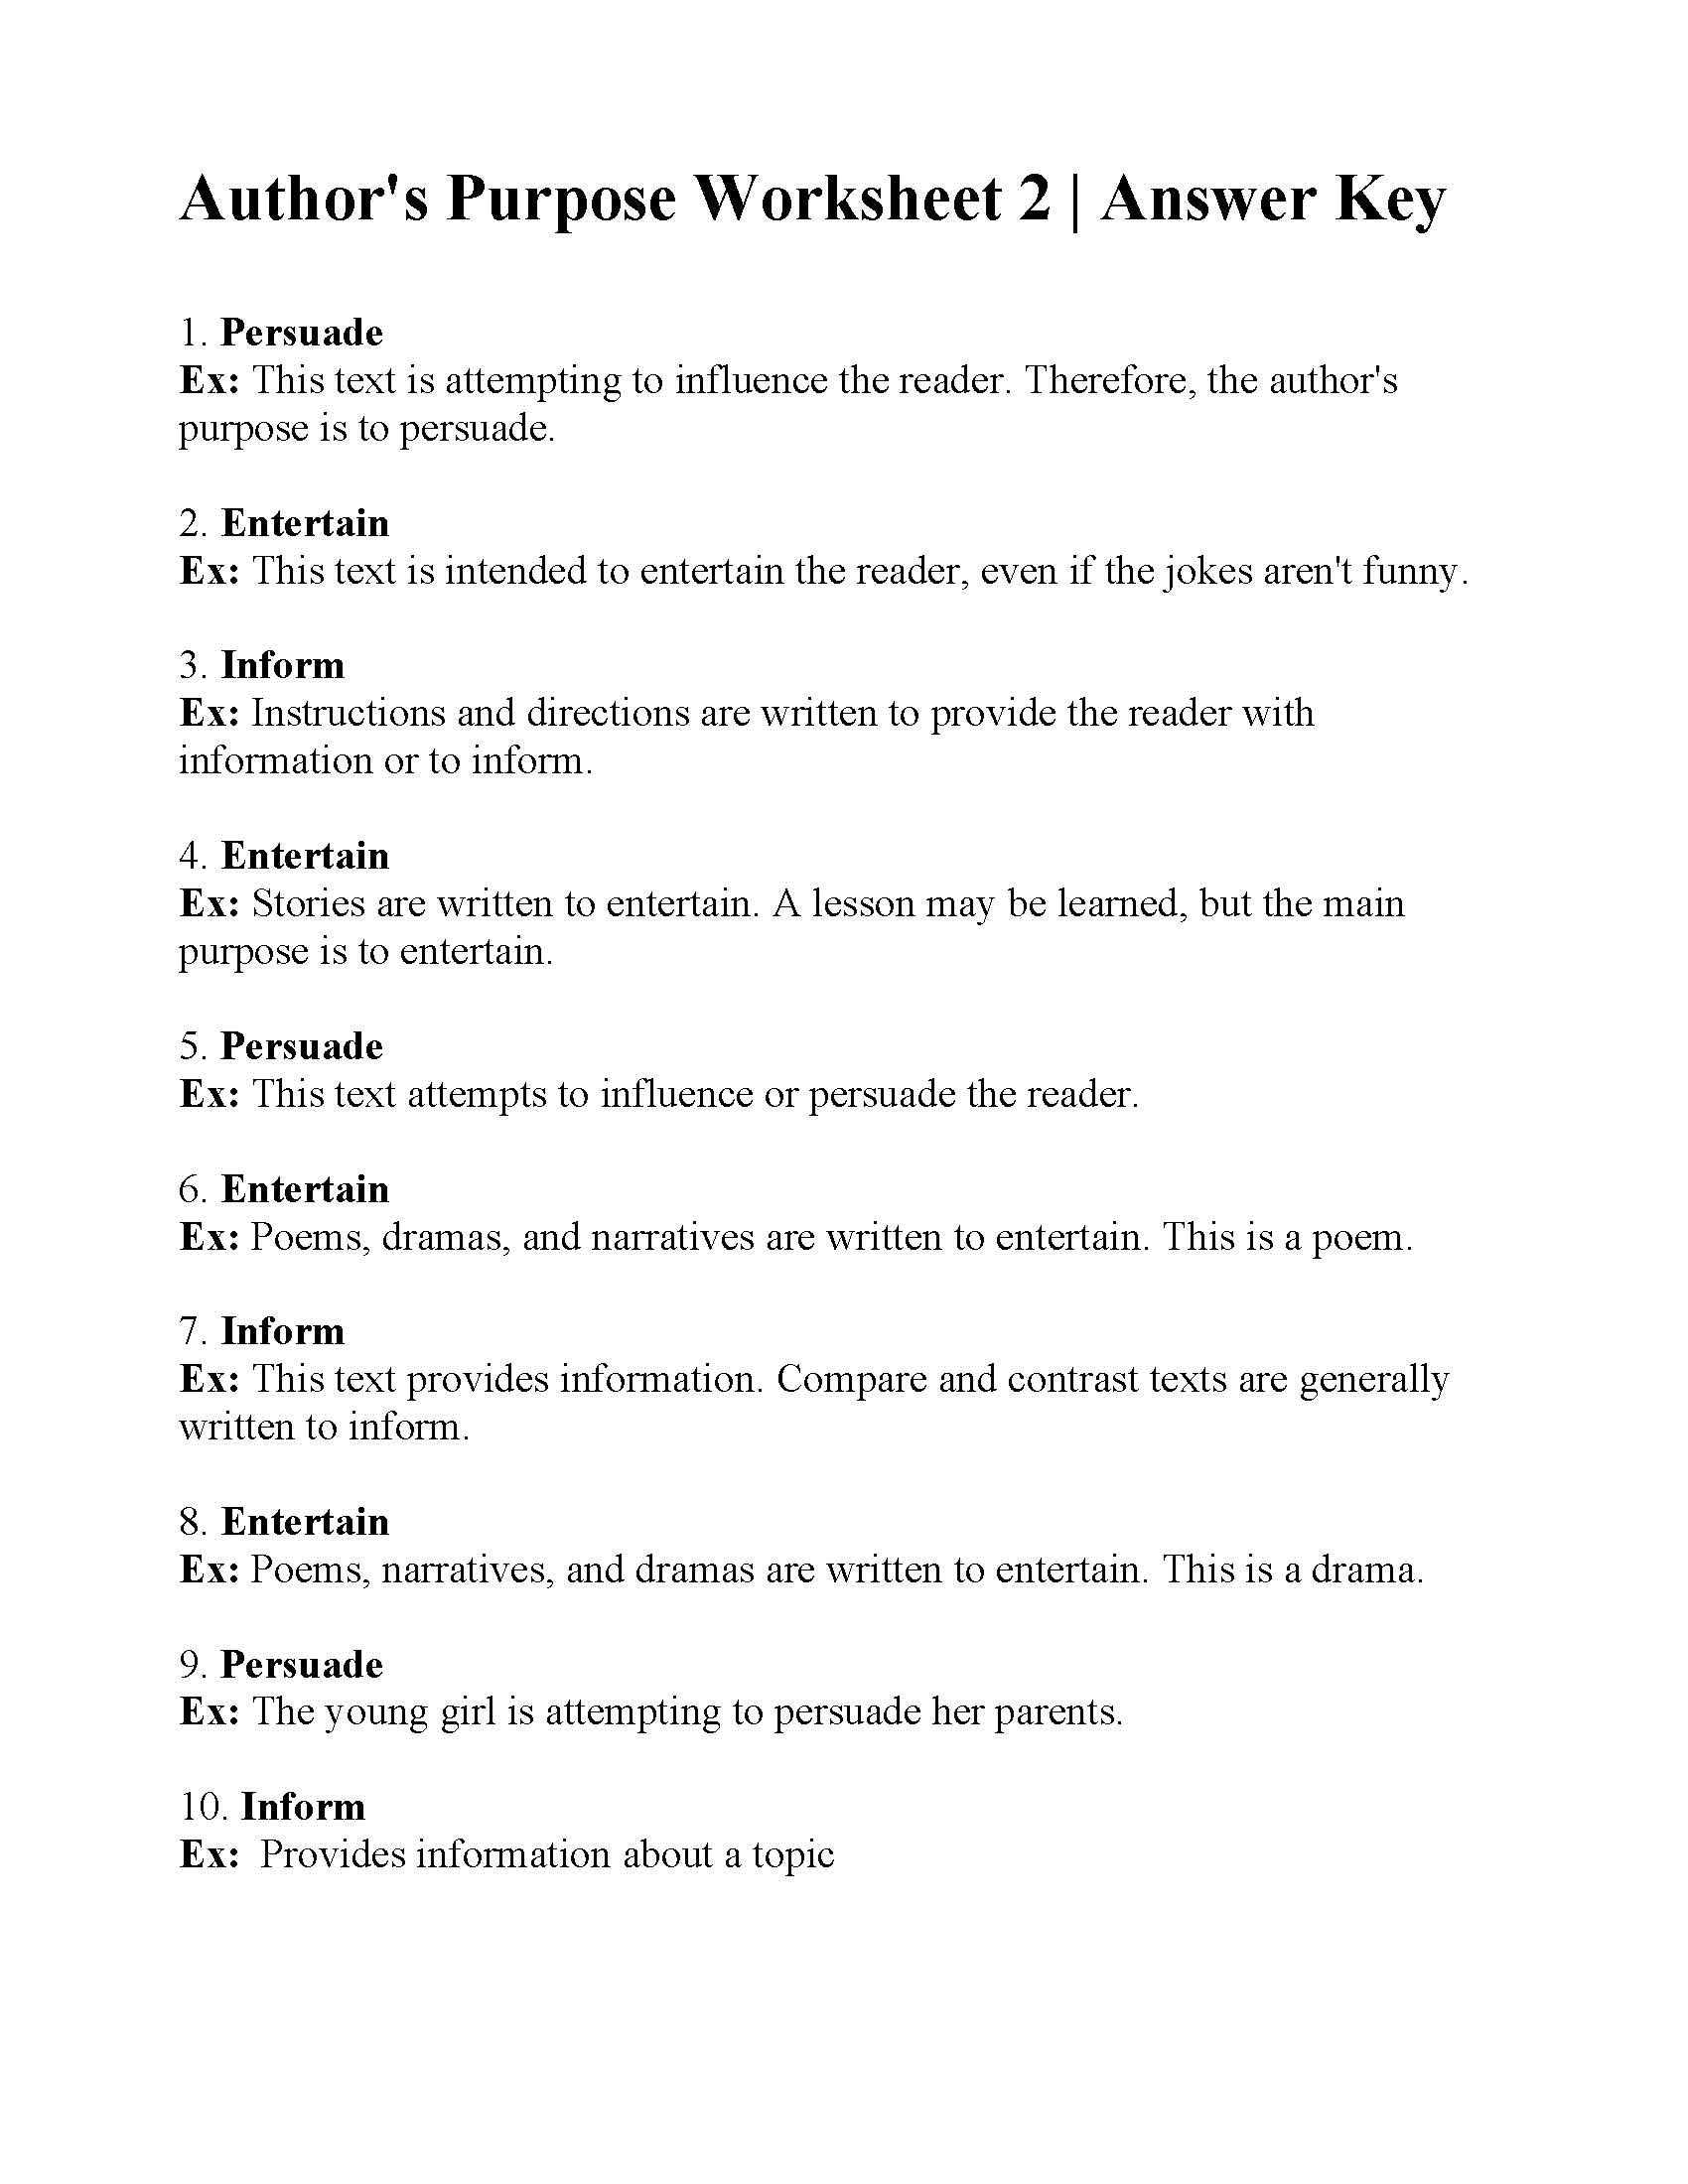 This Is The Answer Key For The Author S Purpose Worksheet